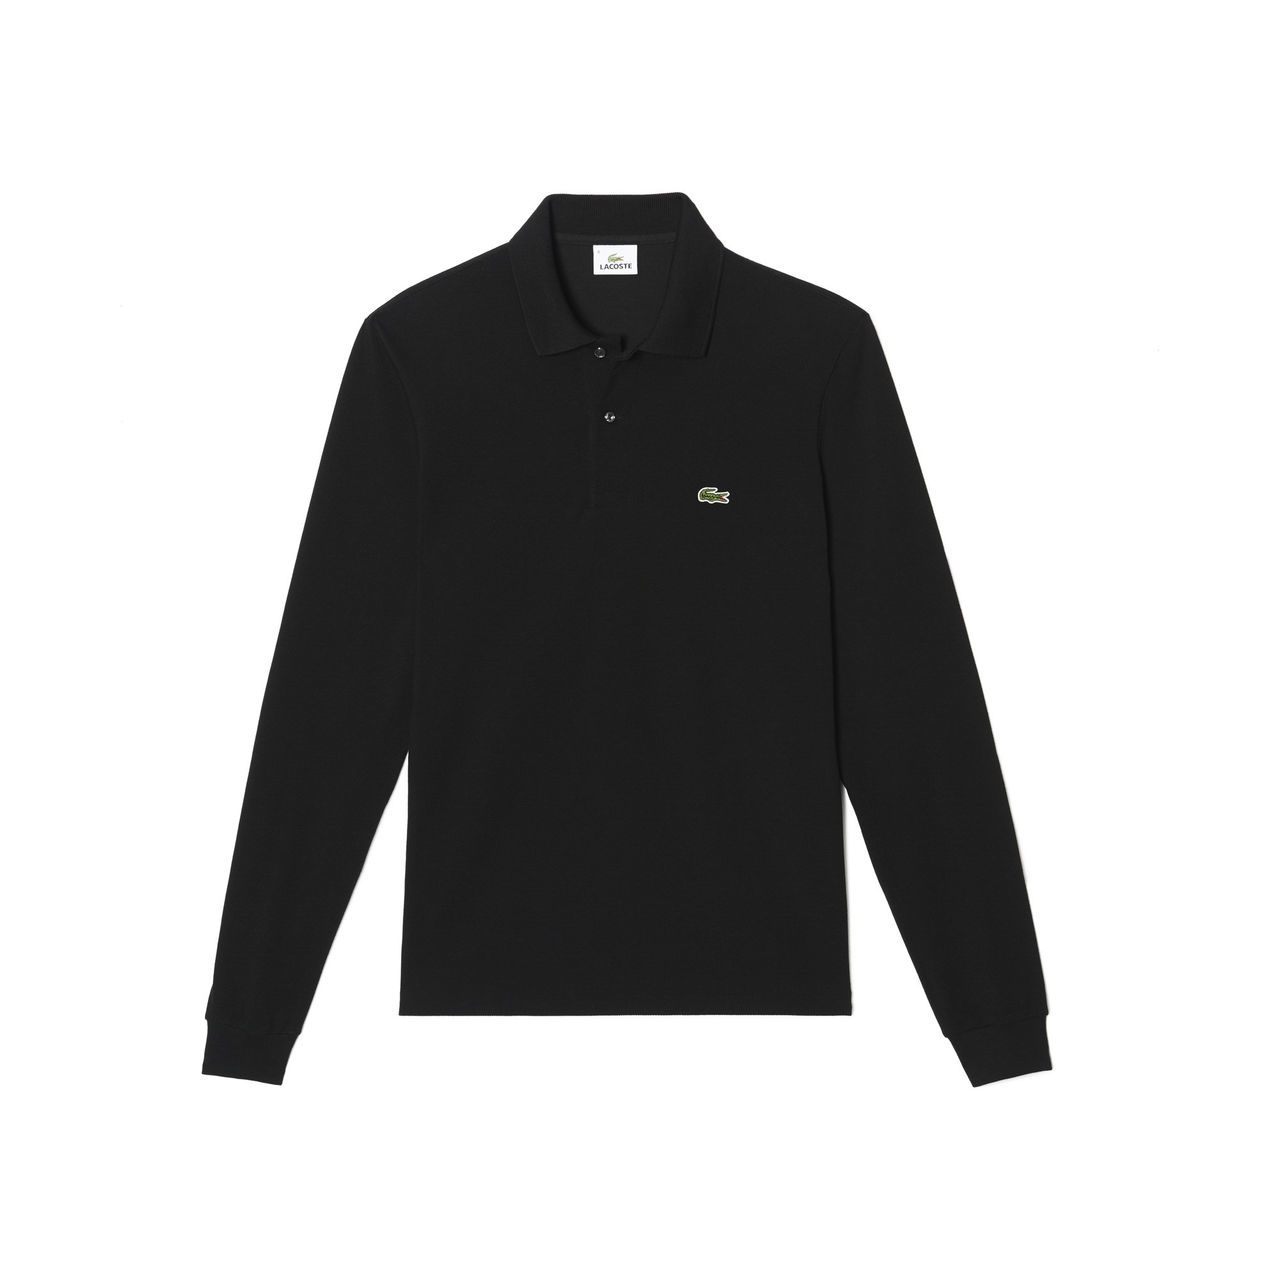 Image of Lacoste M's Polo Manches Longues Grösse 3 Herren